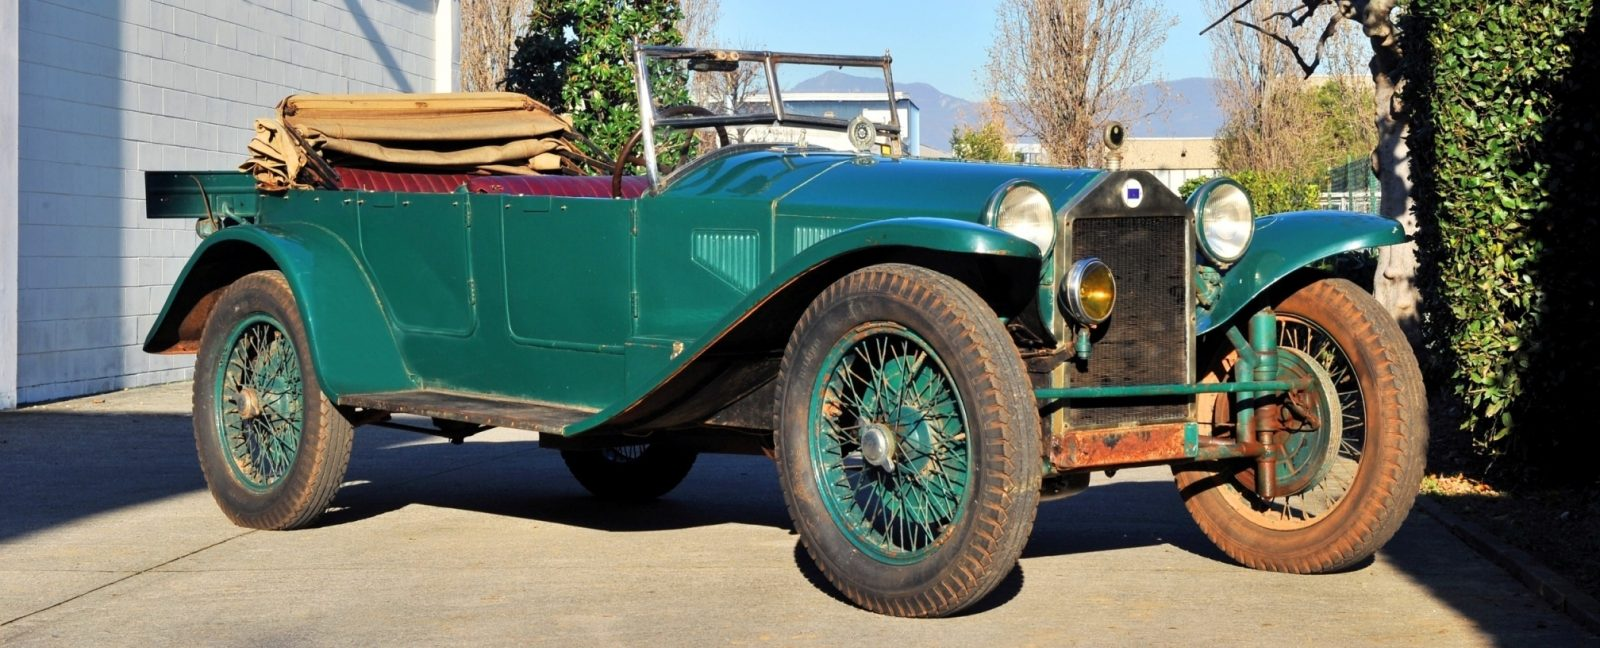 Wealth Dreams -- 1930 Lancia Lambda 8 Sports Tourer Seeks New Home -- My Home 15